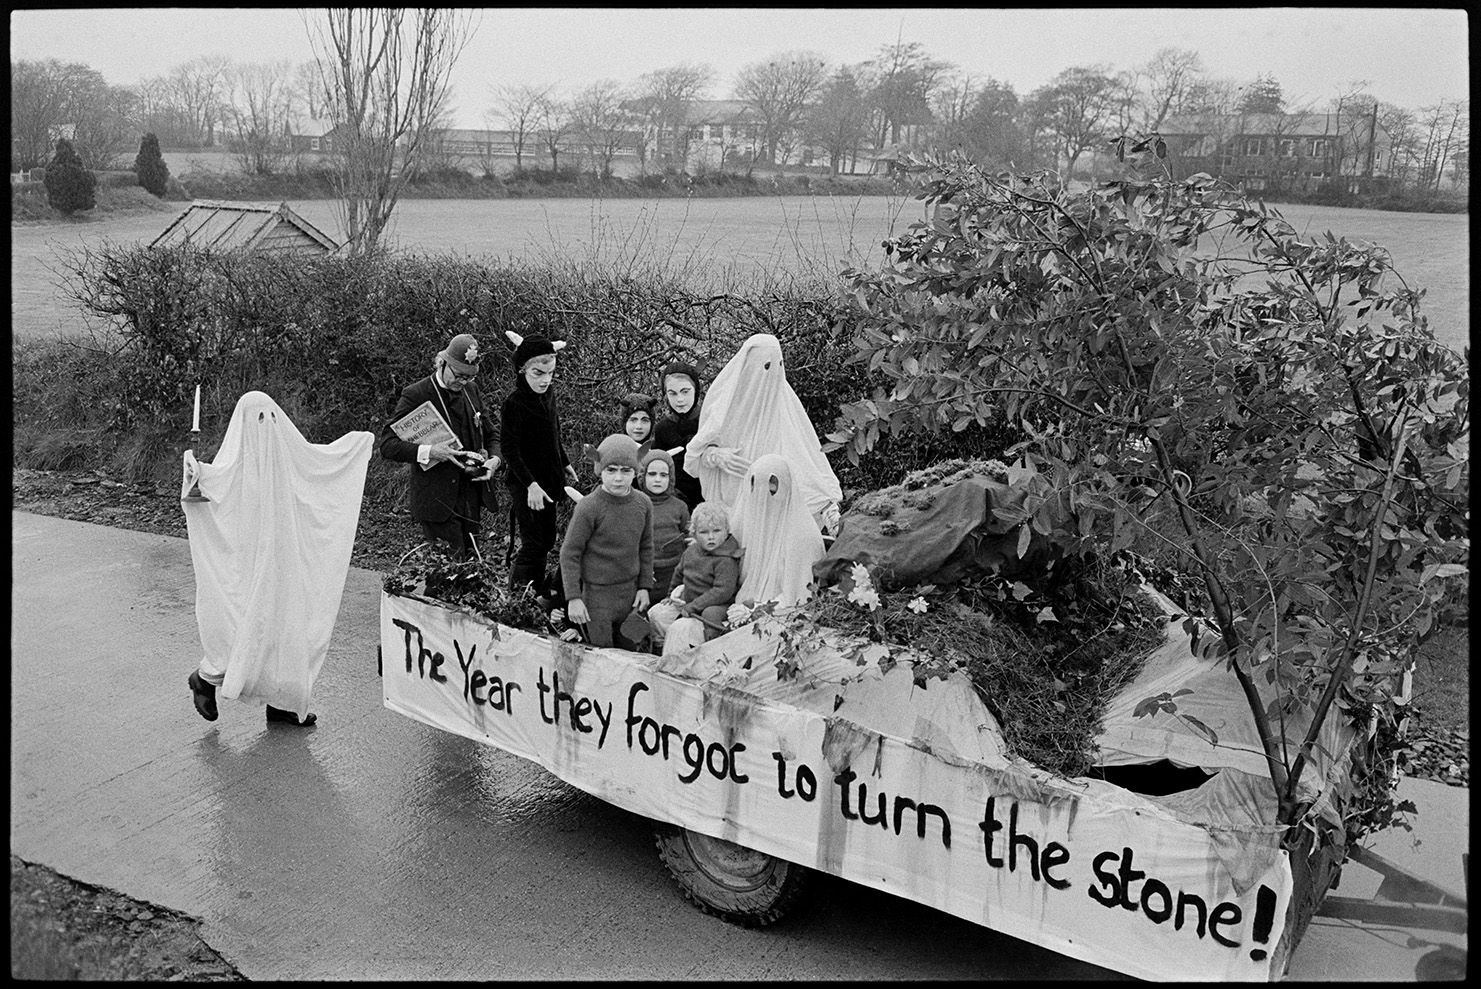 The year they forgot to turn the stone, Shebbear, April 1978. Documentary photograph by James Ravilious for the Beaford Archive © Beaford Arts